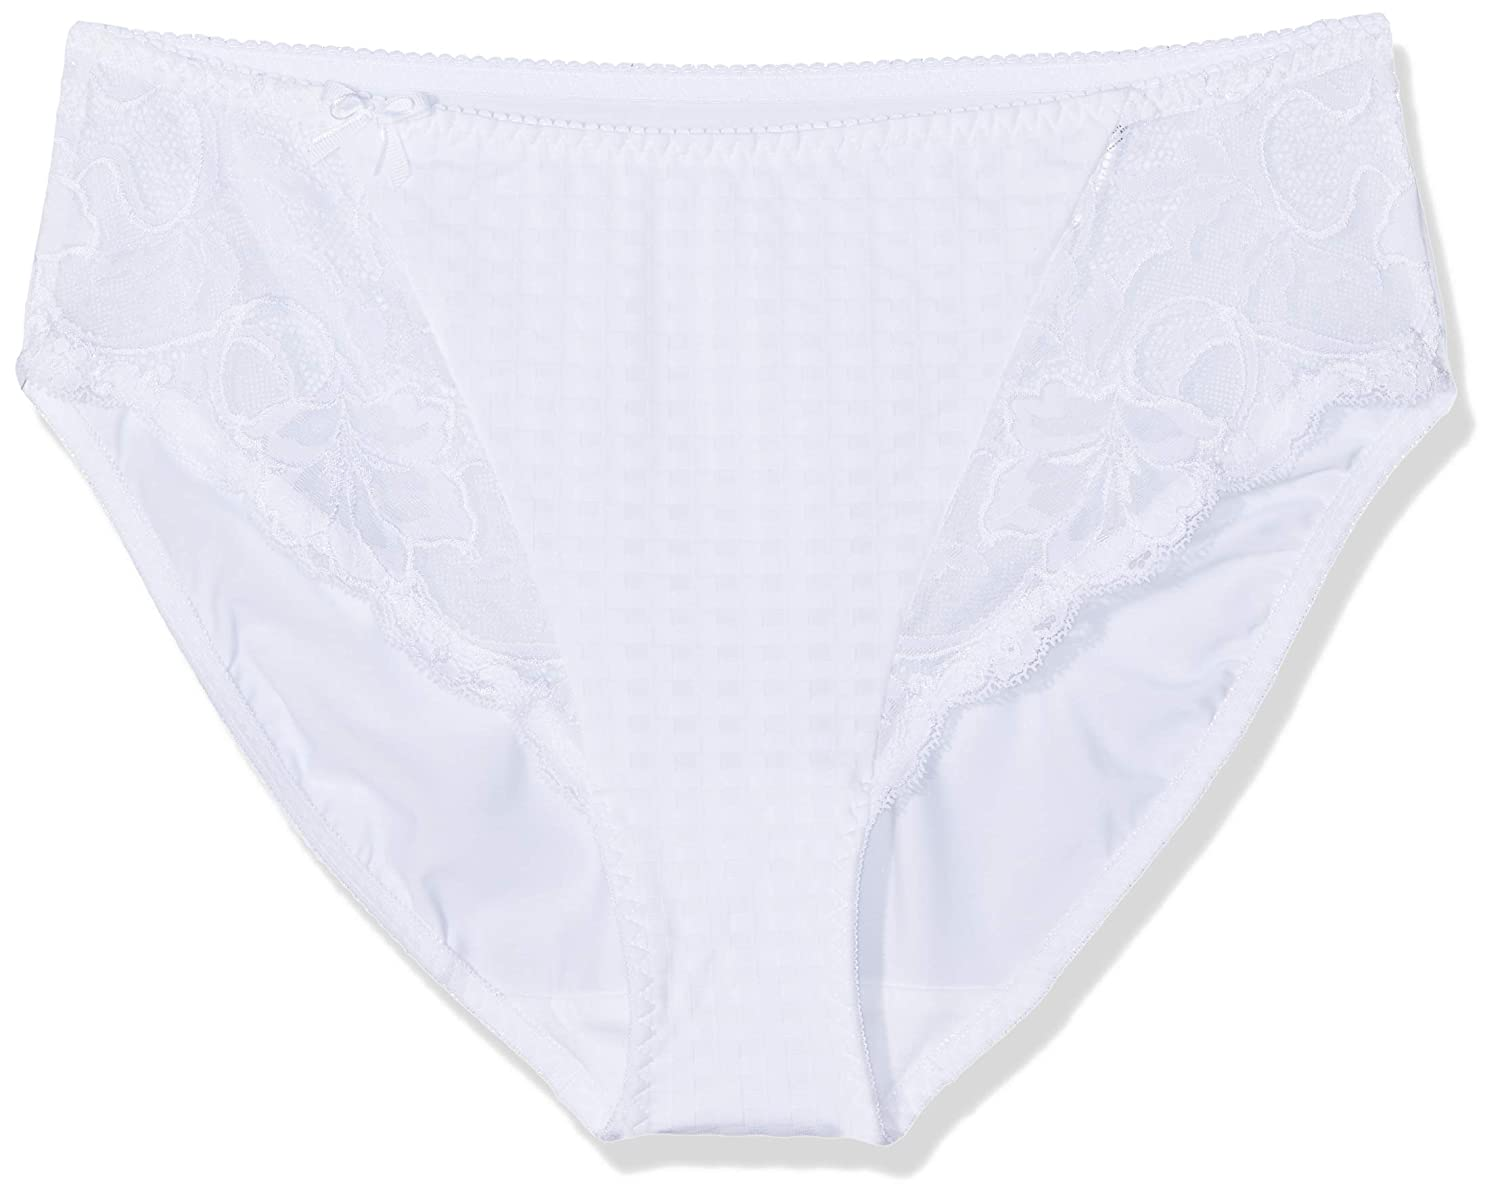 1e23cfd86c29 Prima Donna Madison Panties Rio Brief 0562120 at Amazon Women's Clothing  store: Briefs Underwear